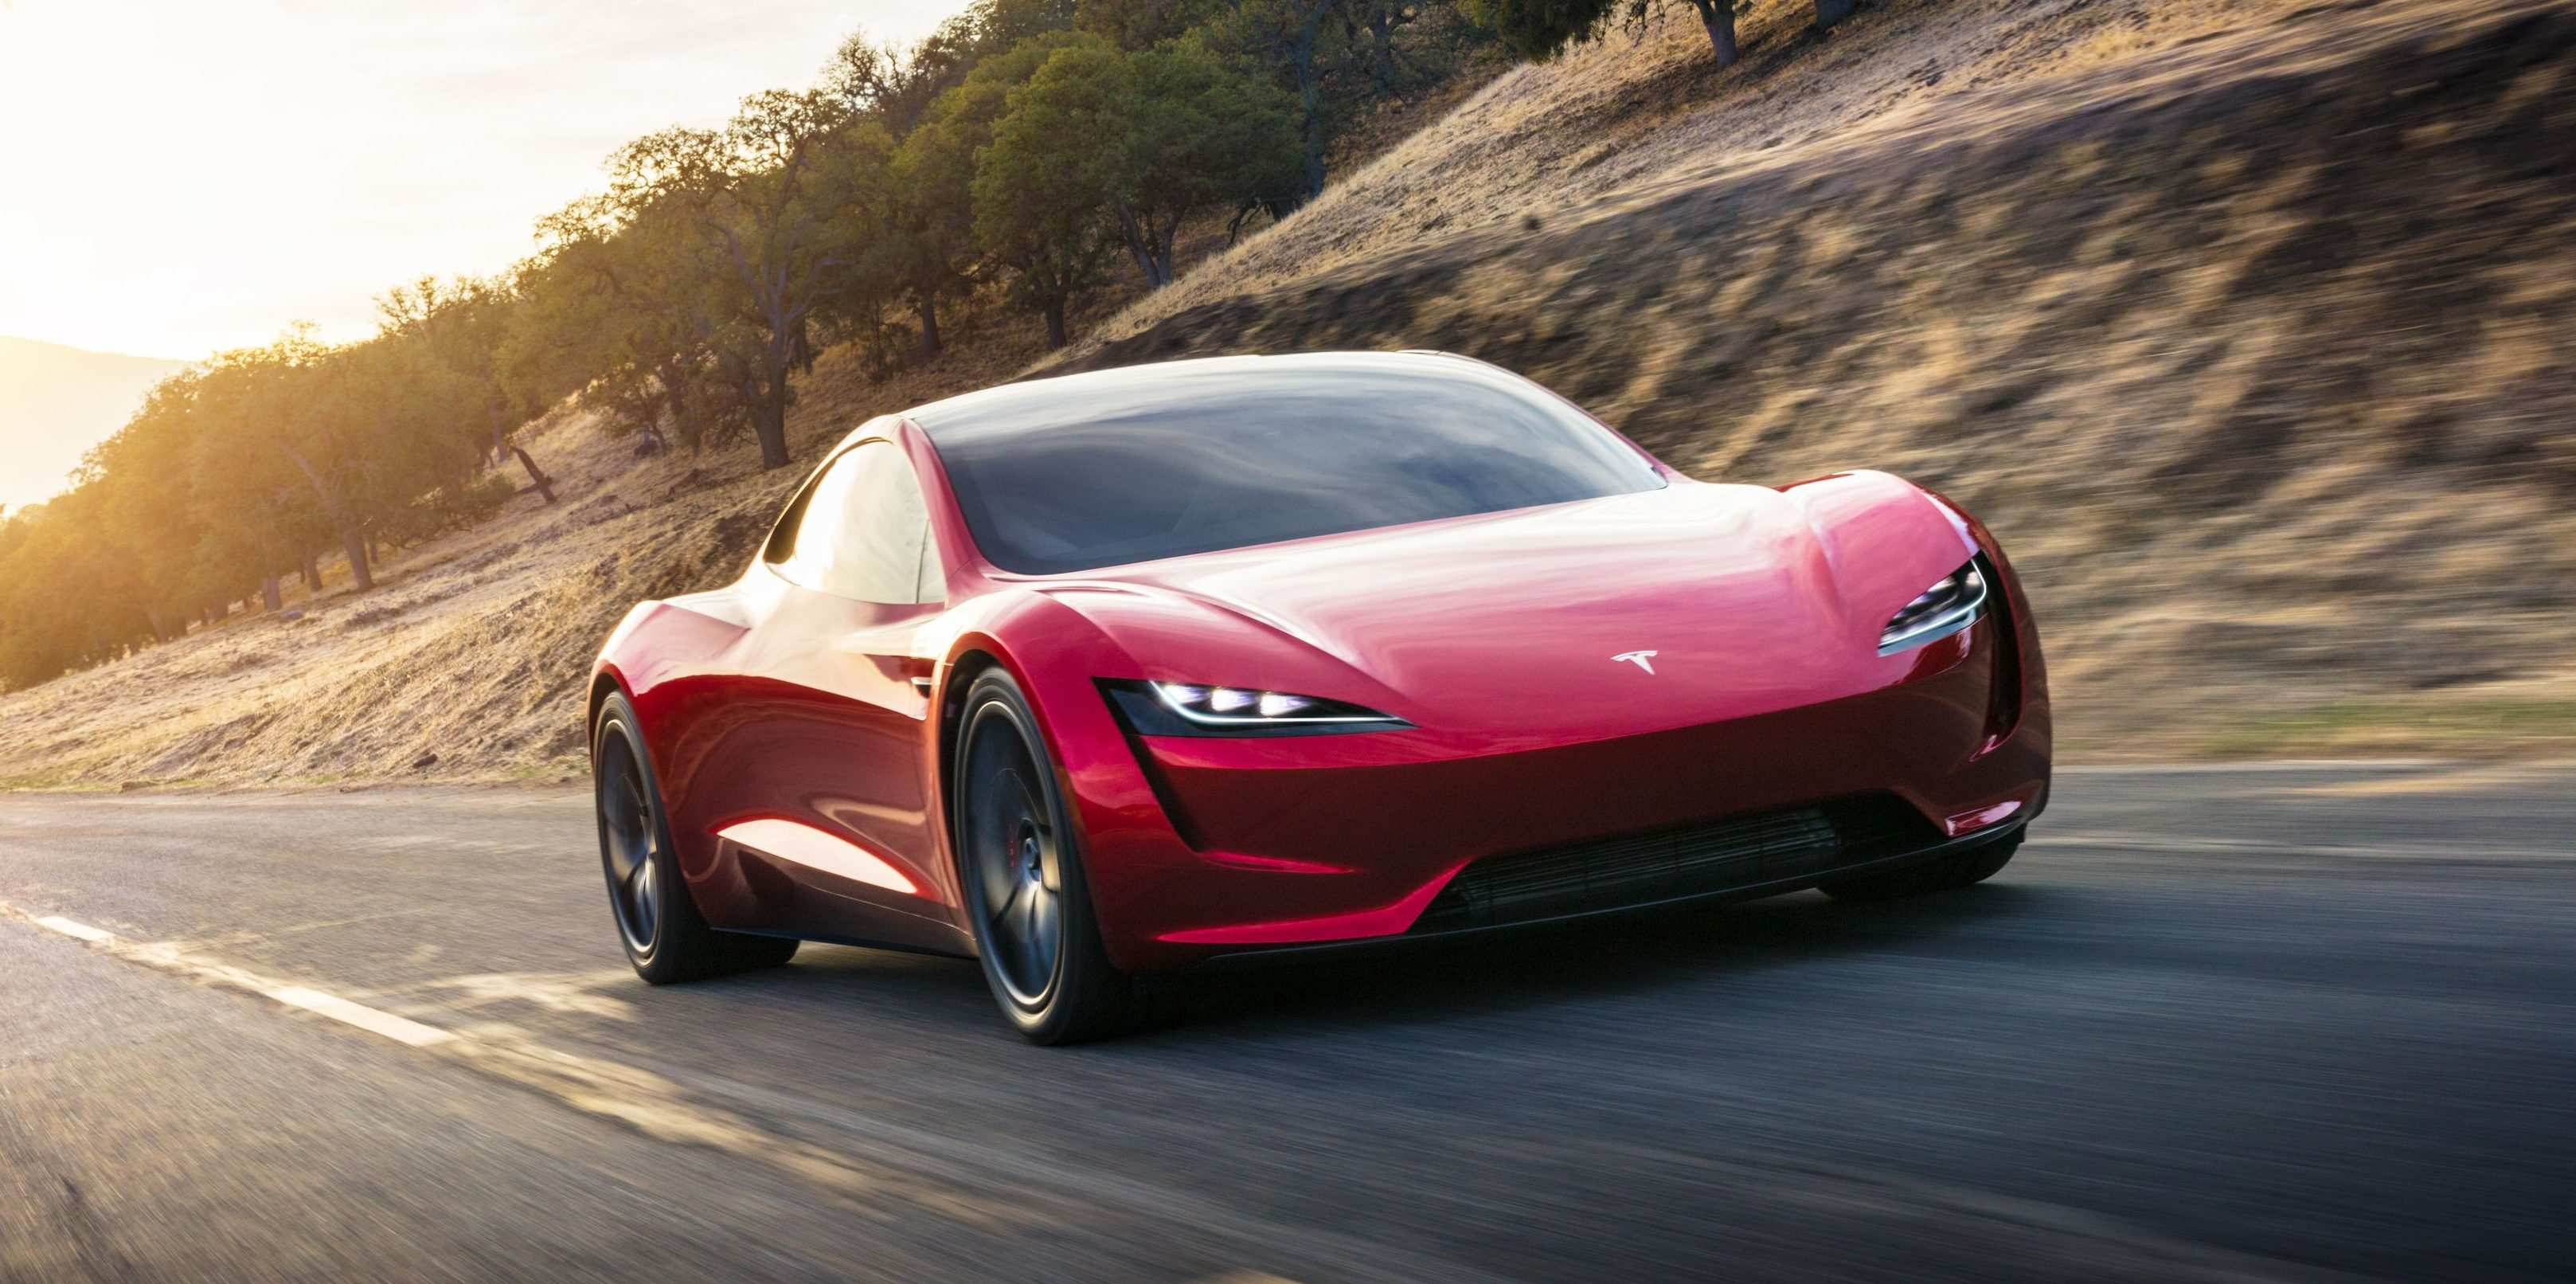 41 The Best 2019 Tesla Roadster P100D Exterior And Interior